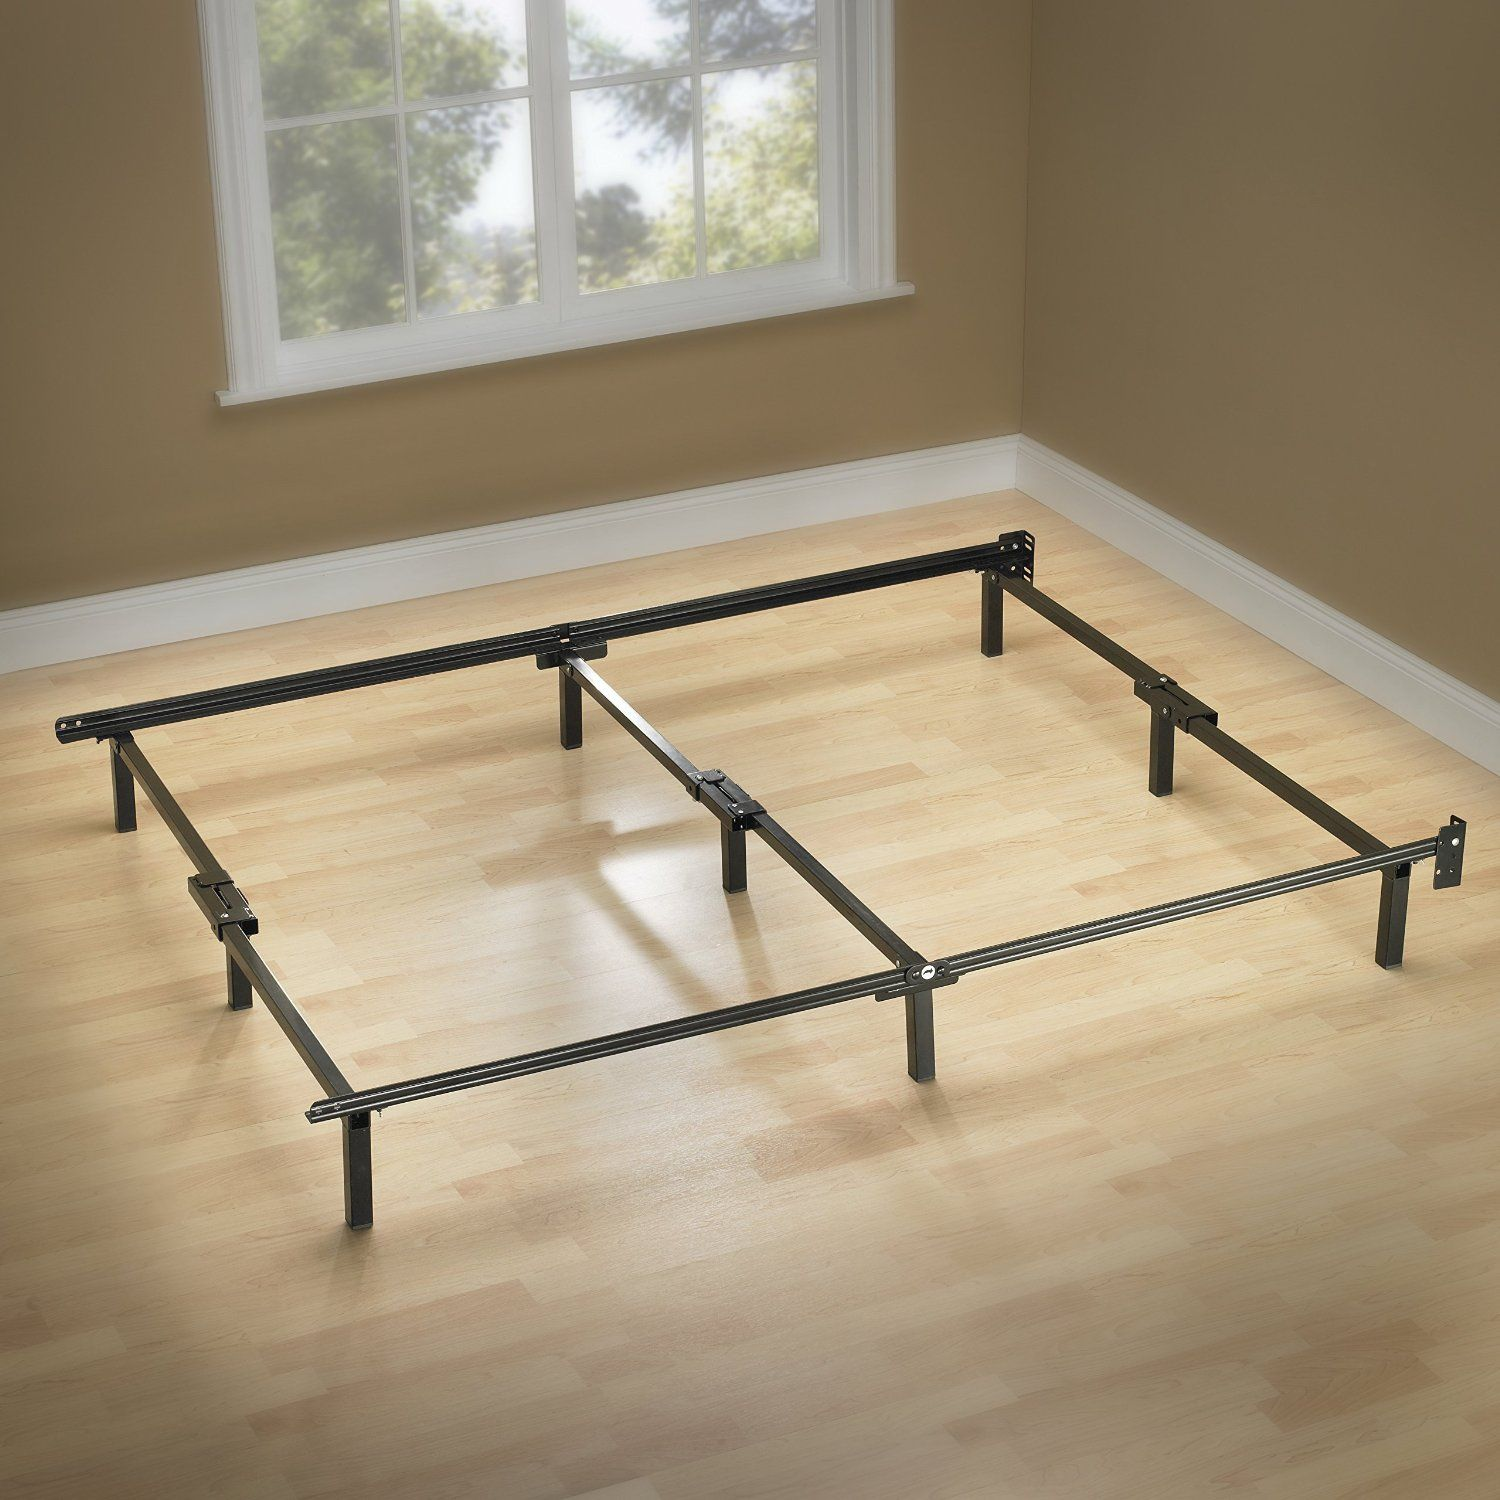 Amazoncom Zinus Compack 9 Leg Support Bed Frame, For Box Spring